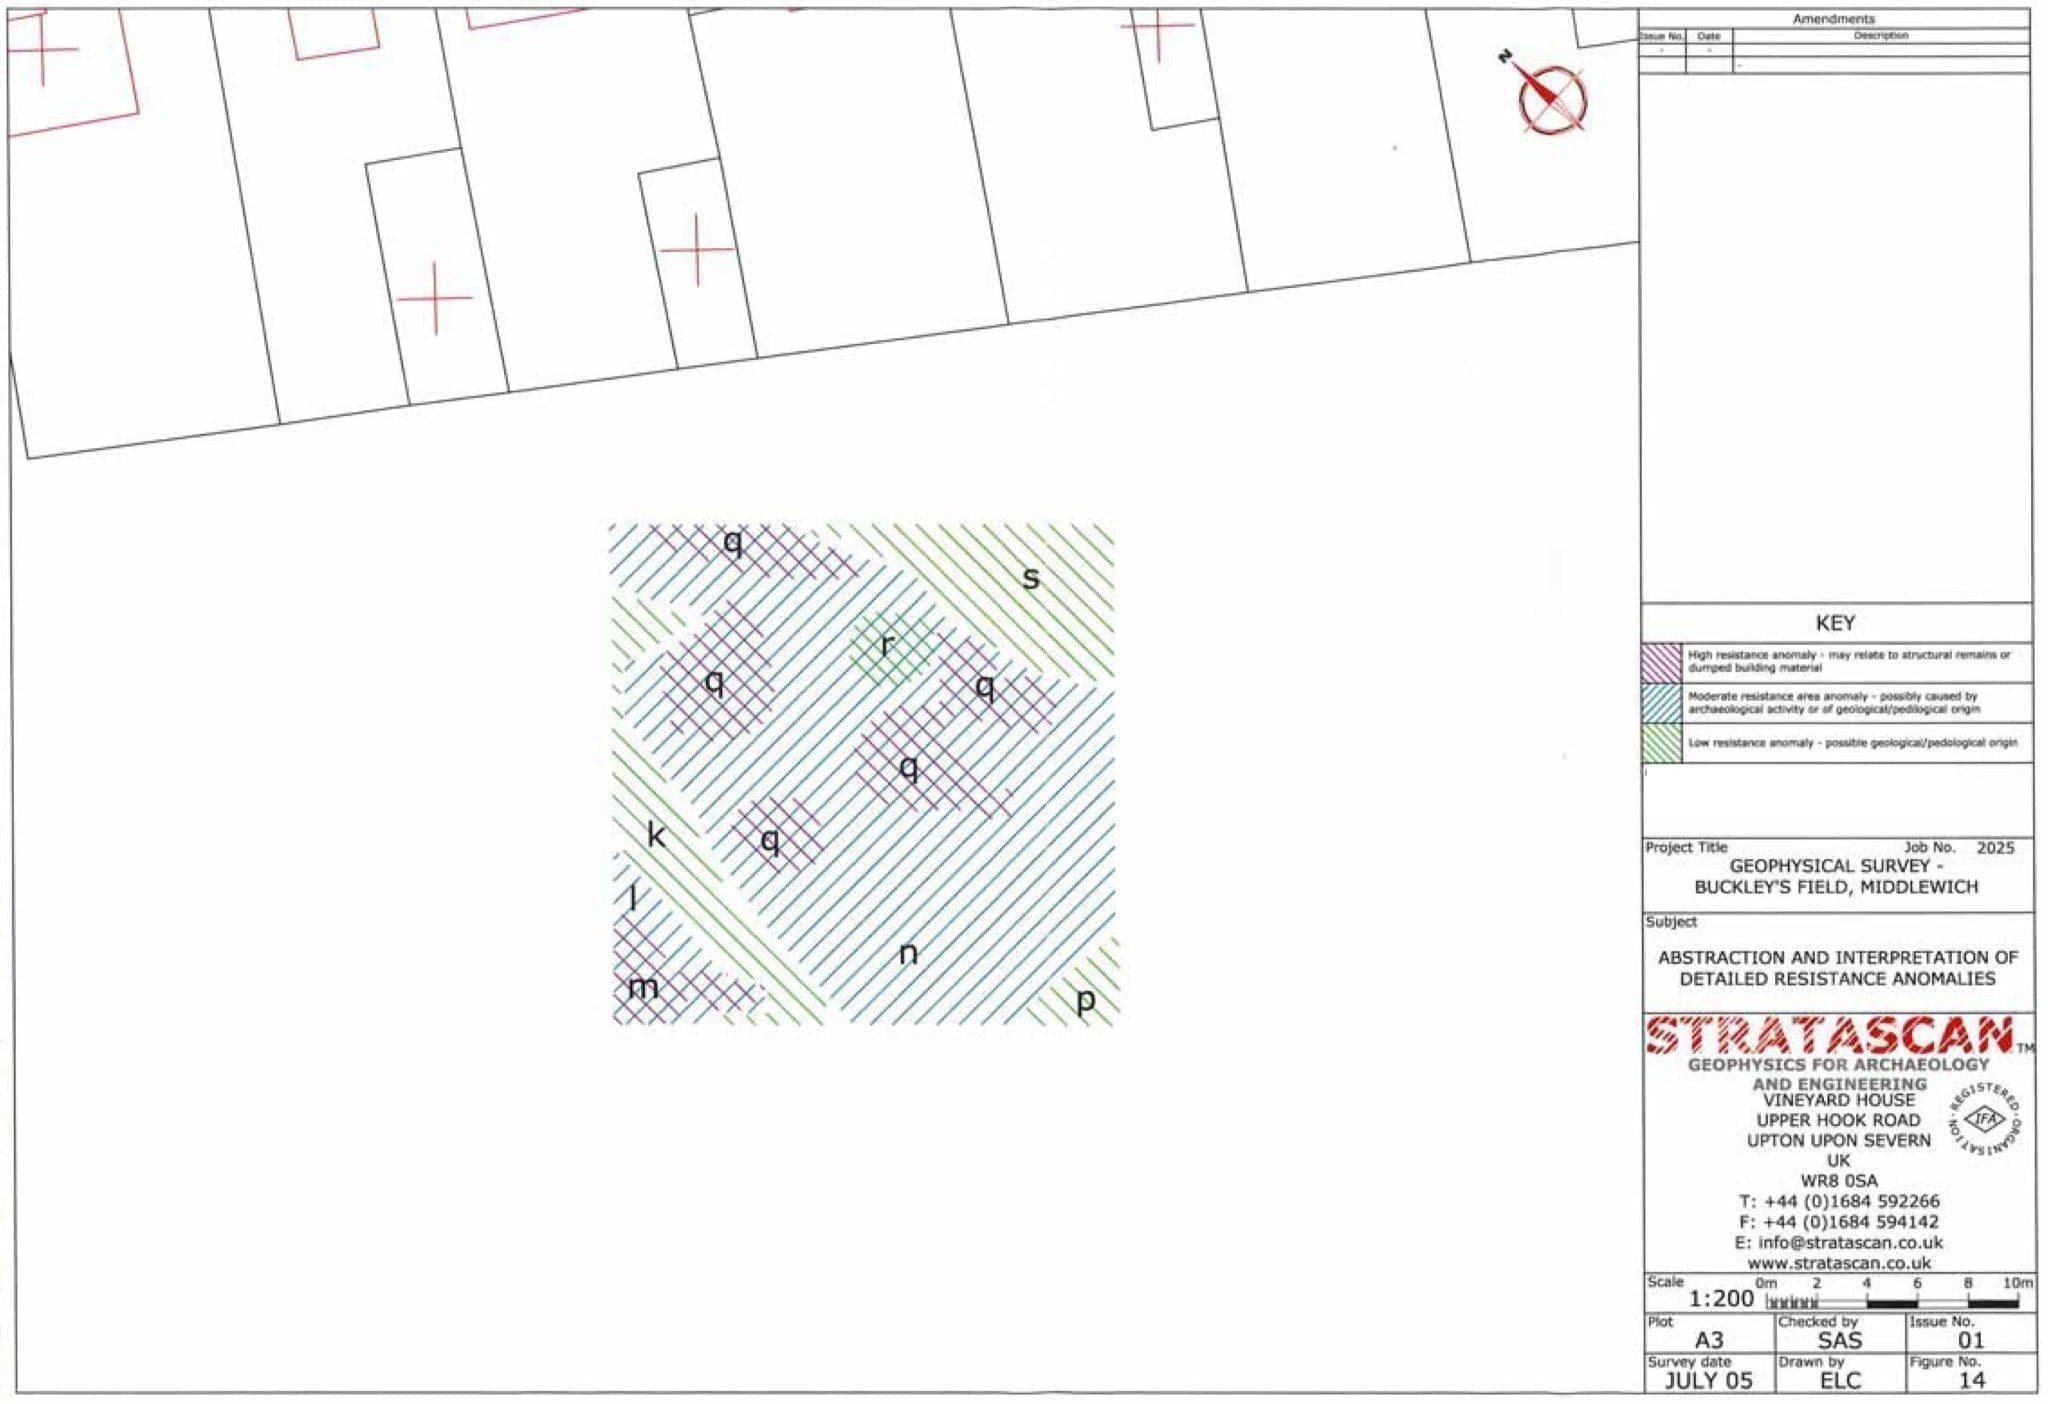 Middlewich Community Dig Plot of Close Collection Resistivity Data